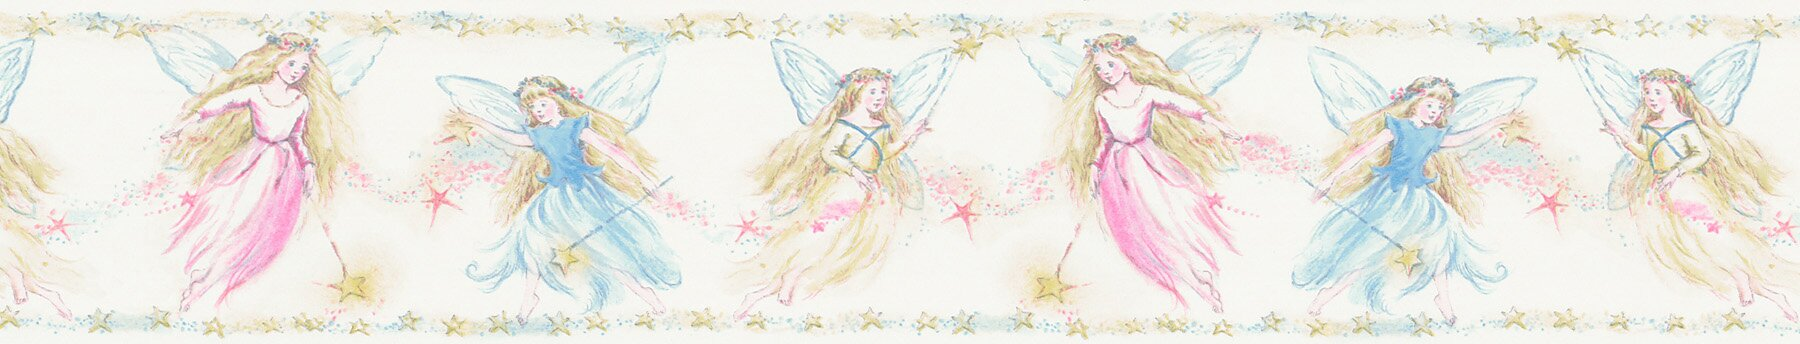 "Kids World Cottingley Fairies 33' x 20.5"" Figural Border Wallpaper"